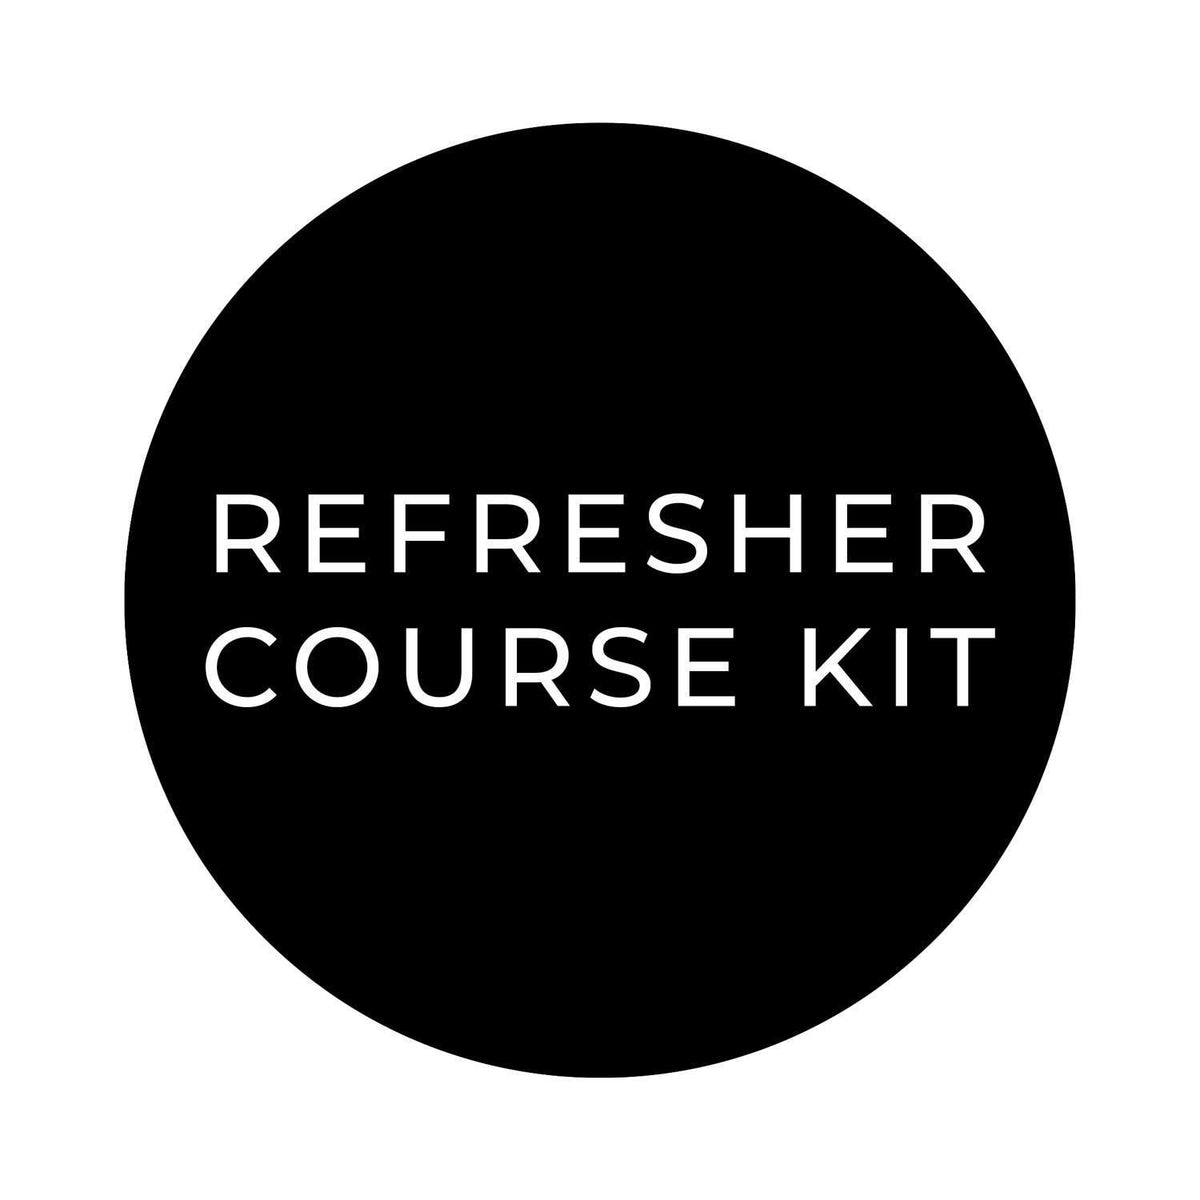 Education_Kits - Laced Academy Refresher Course Kit